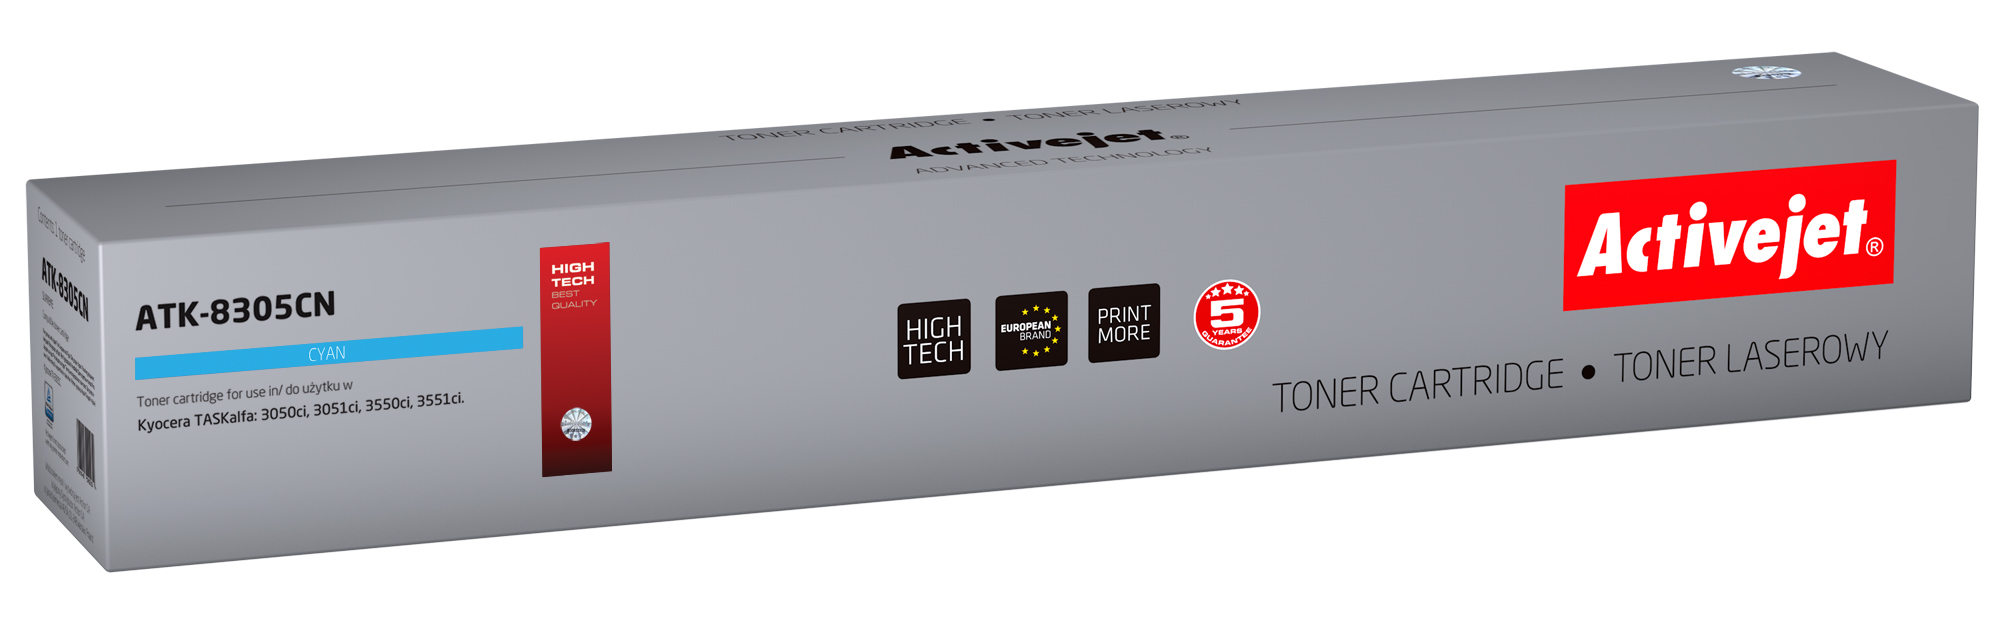 ActiveJet toner do Kyocera TK-8305C new ATK-8305CN